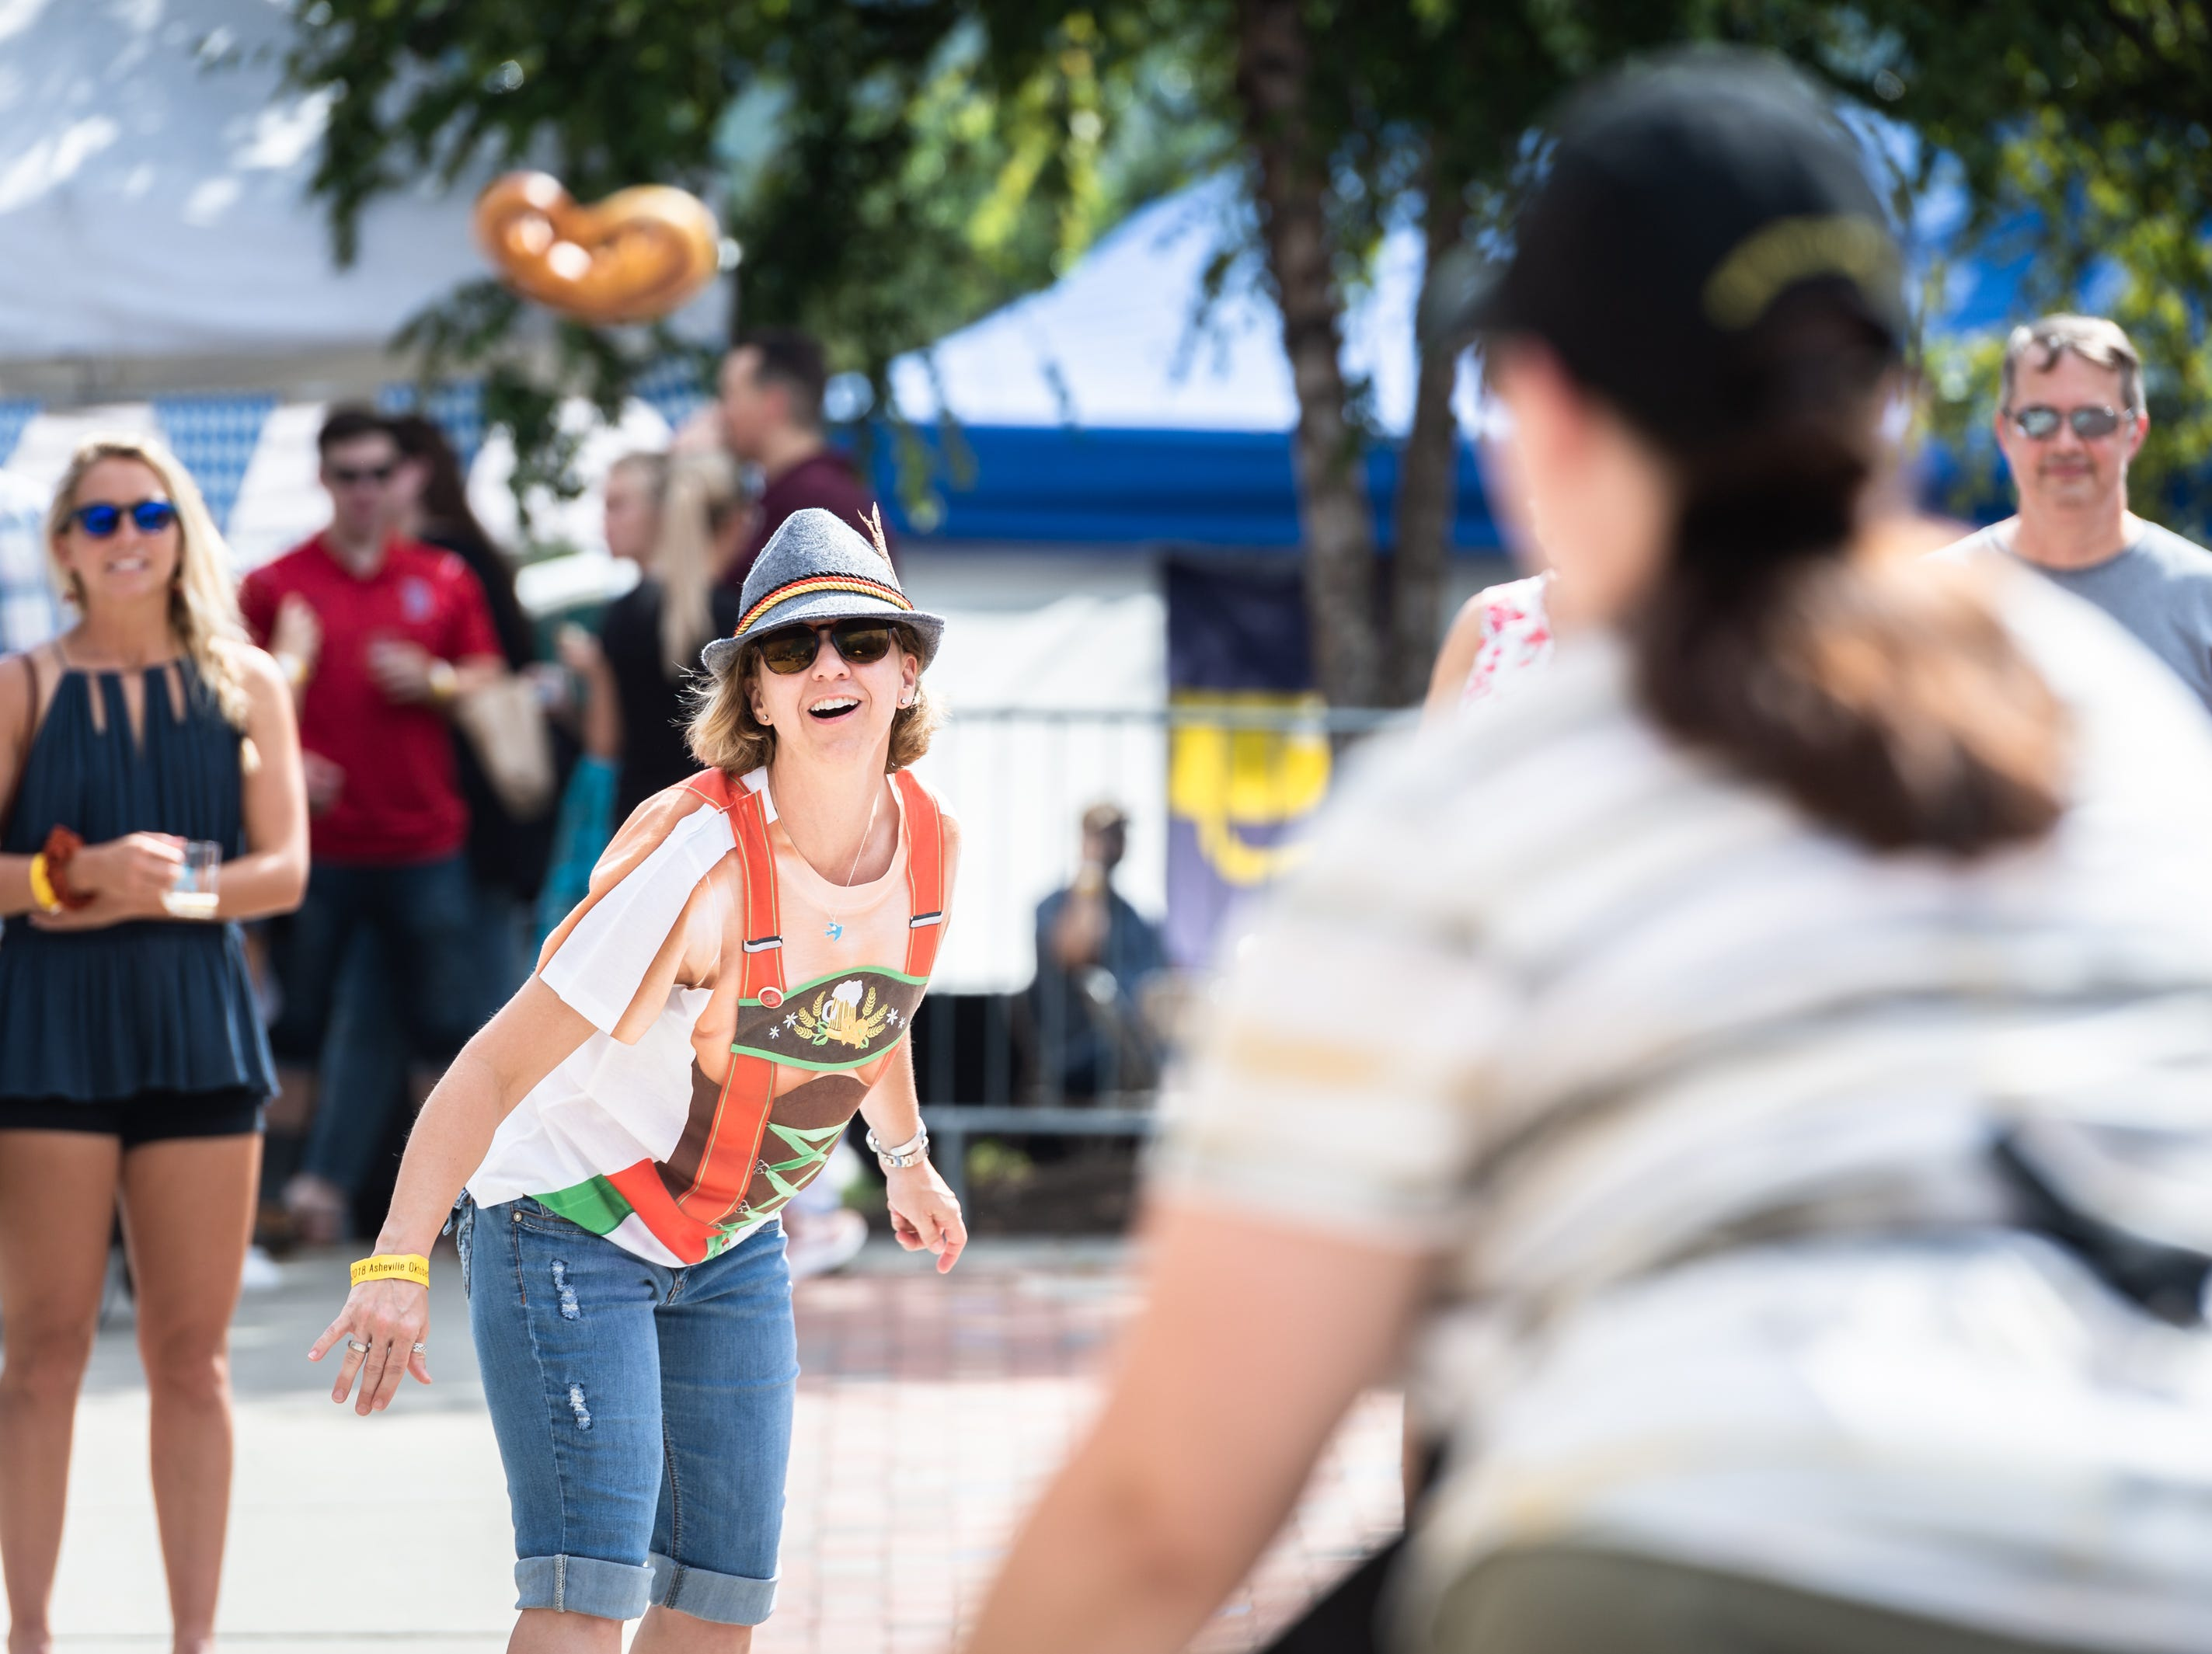 Suzy Milliard tosses a pretzel to her teammate Stacey Heller during the pretzel toss at the 10th annual Asheville Oktoberfest at Pack Square Park Saturday, Oct. 6, 2018.